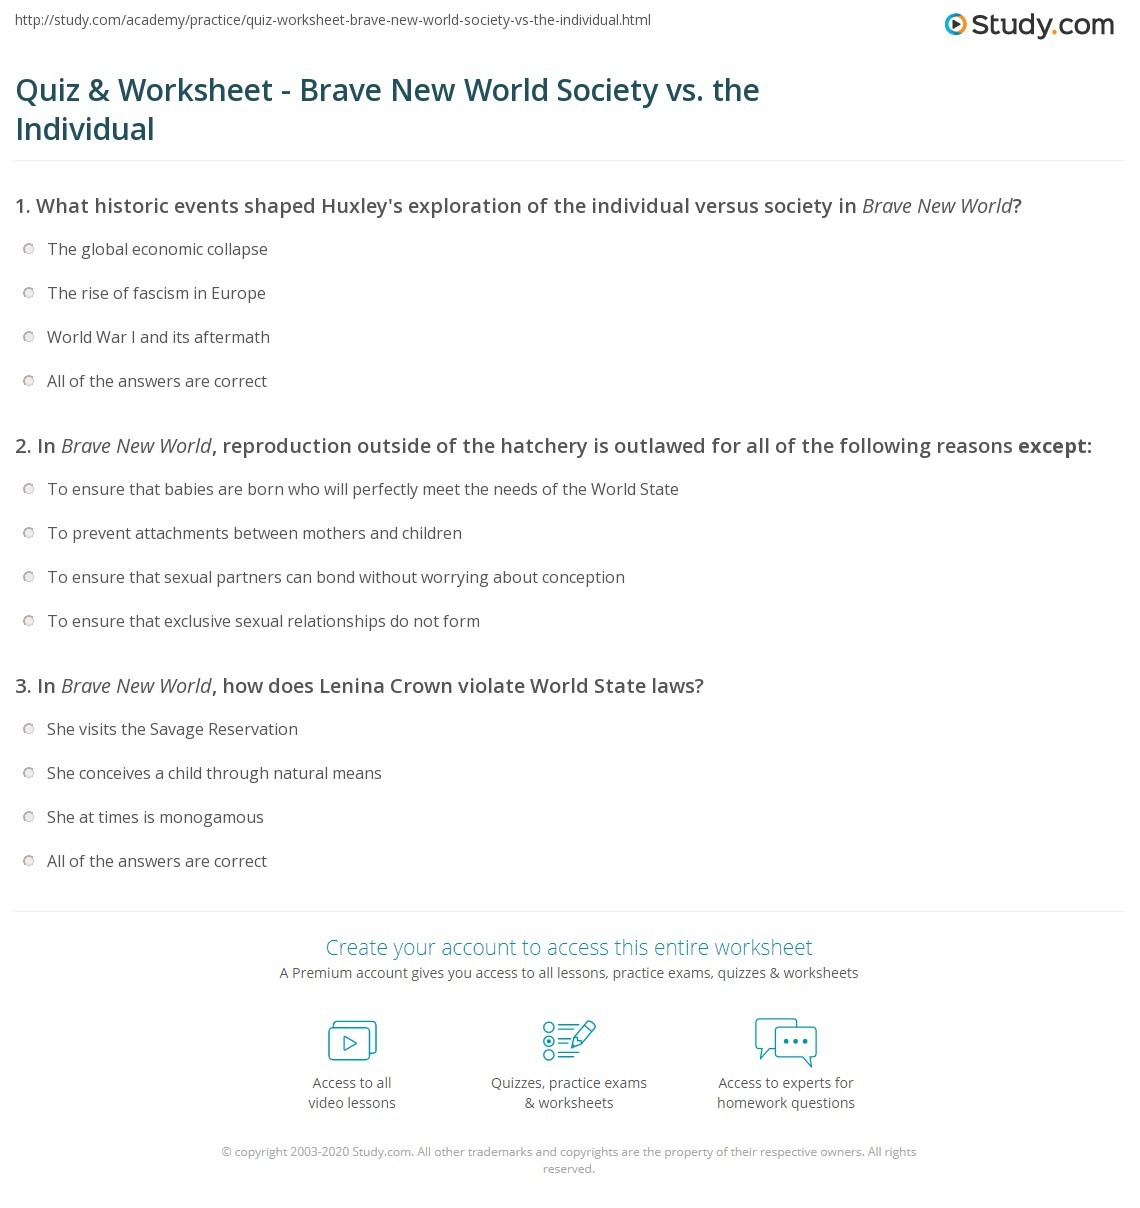 quiz worksheet brave new world society vs the individual. Black Bedroom Furniture Sets. Home Design Ideas